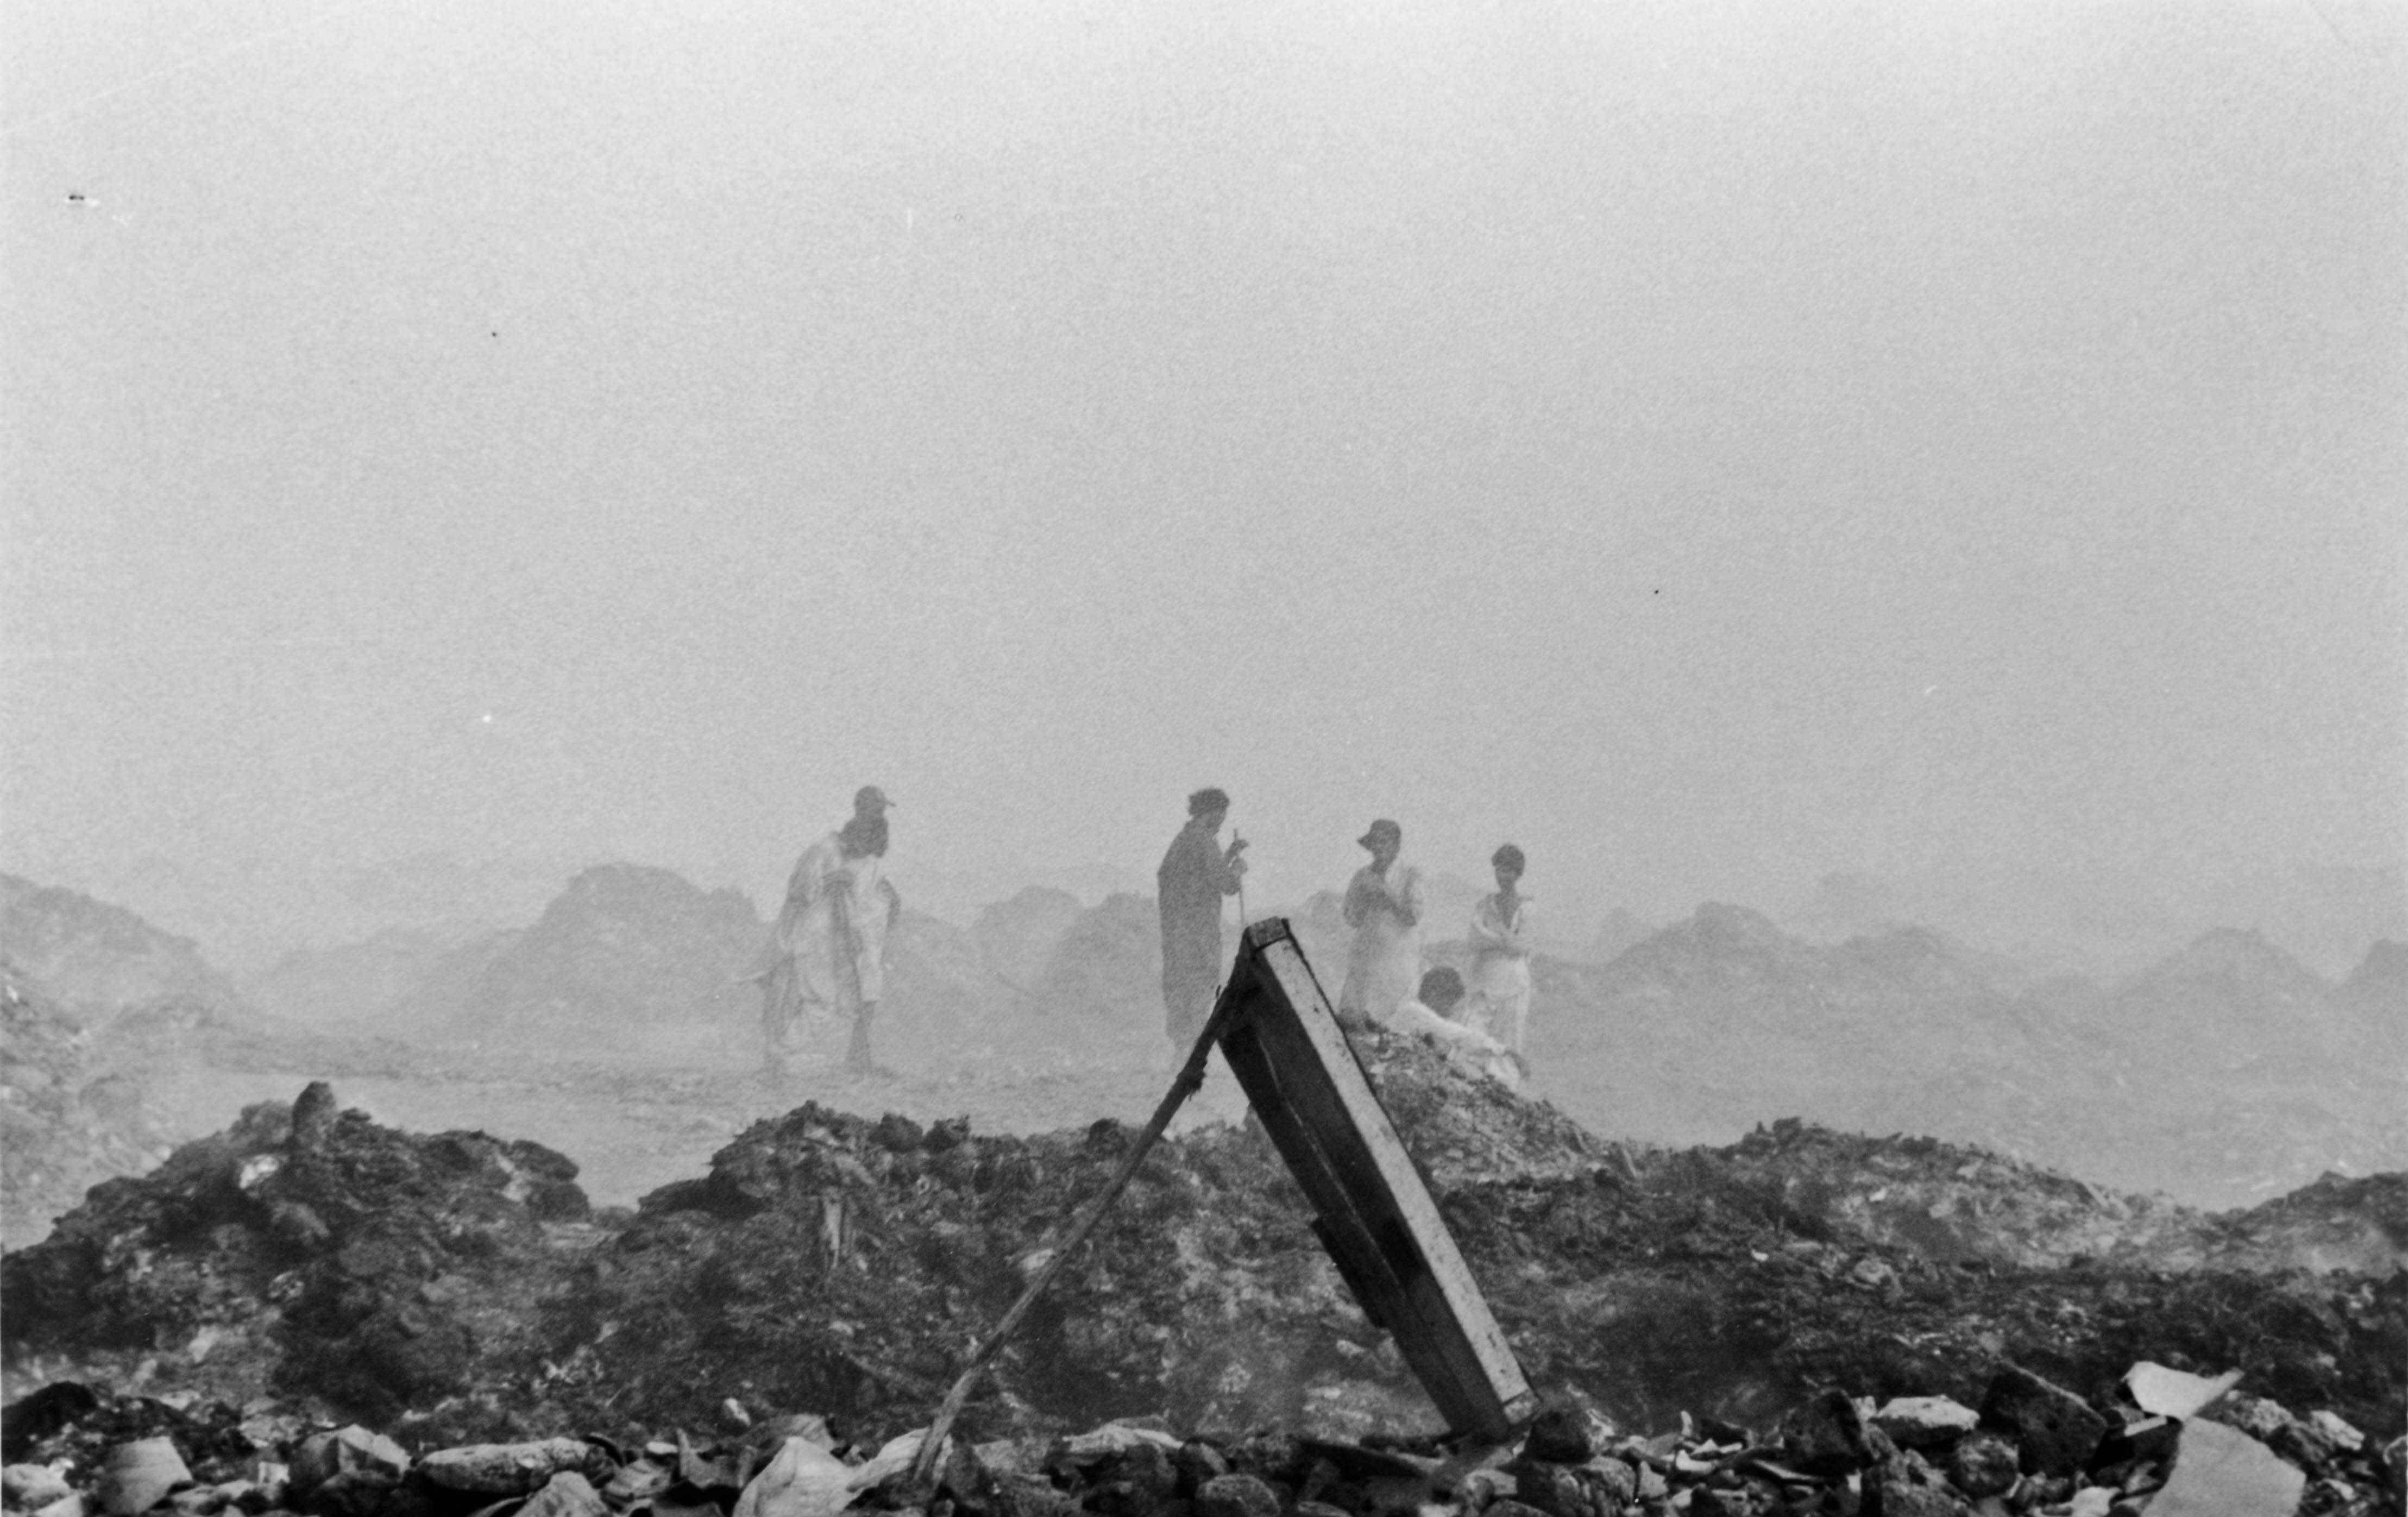 workers take a break from sifting through landfill